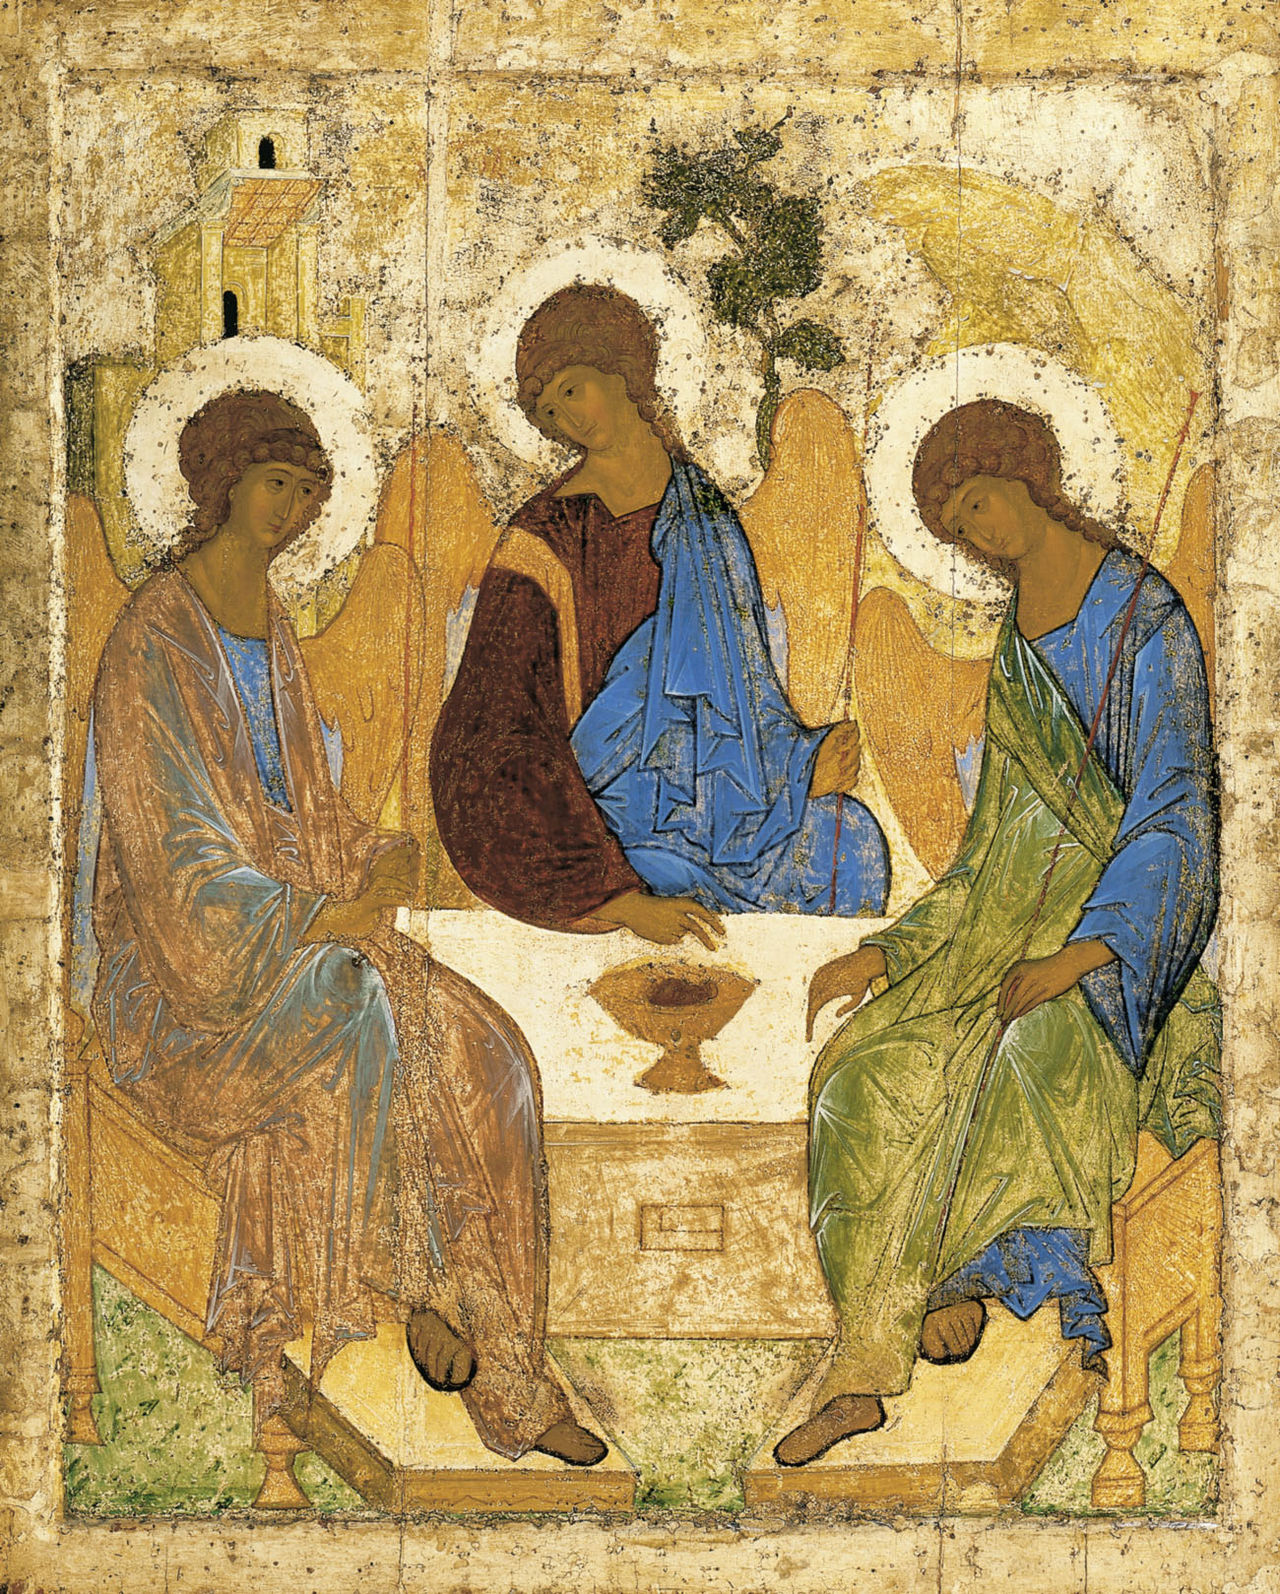 Byzantine icon of the Holy Trinity by Andrei Rublev